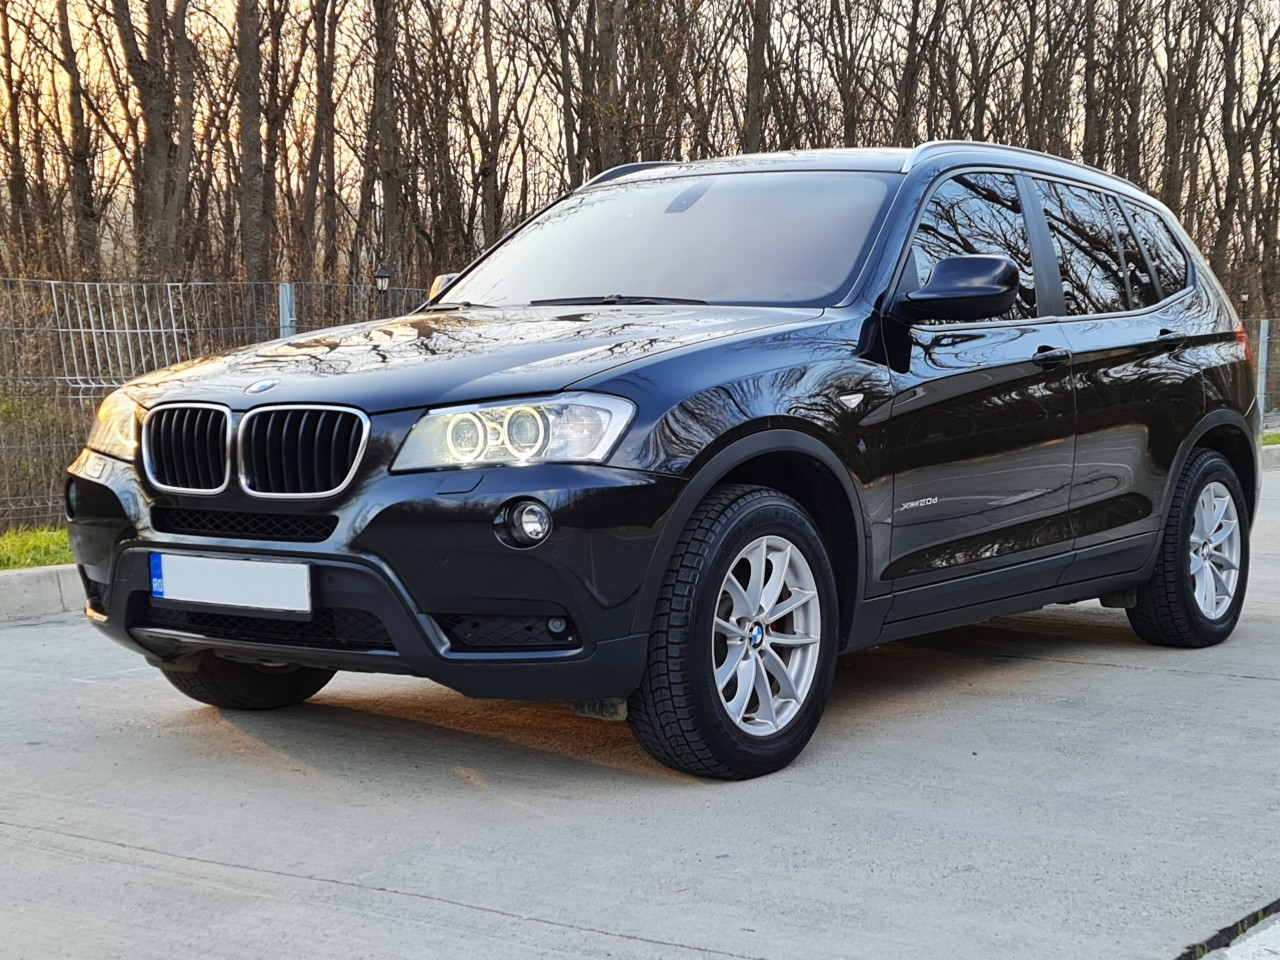 BMW X3 x-drive 2.0 TDI 184 CP full options an fab. 2011